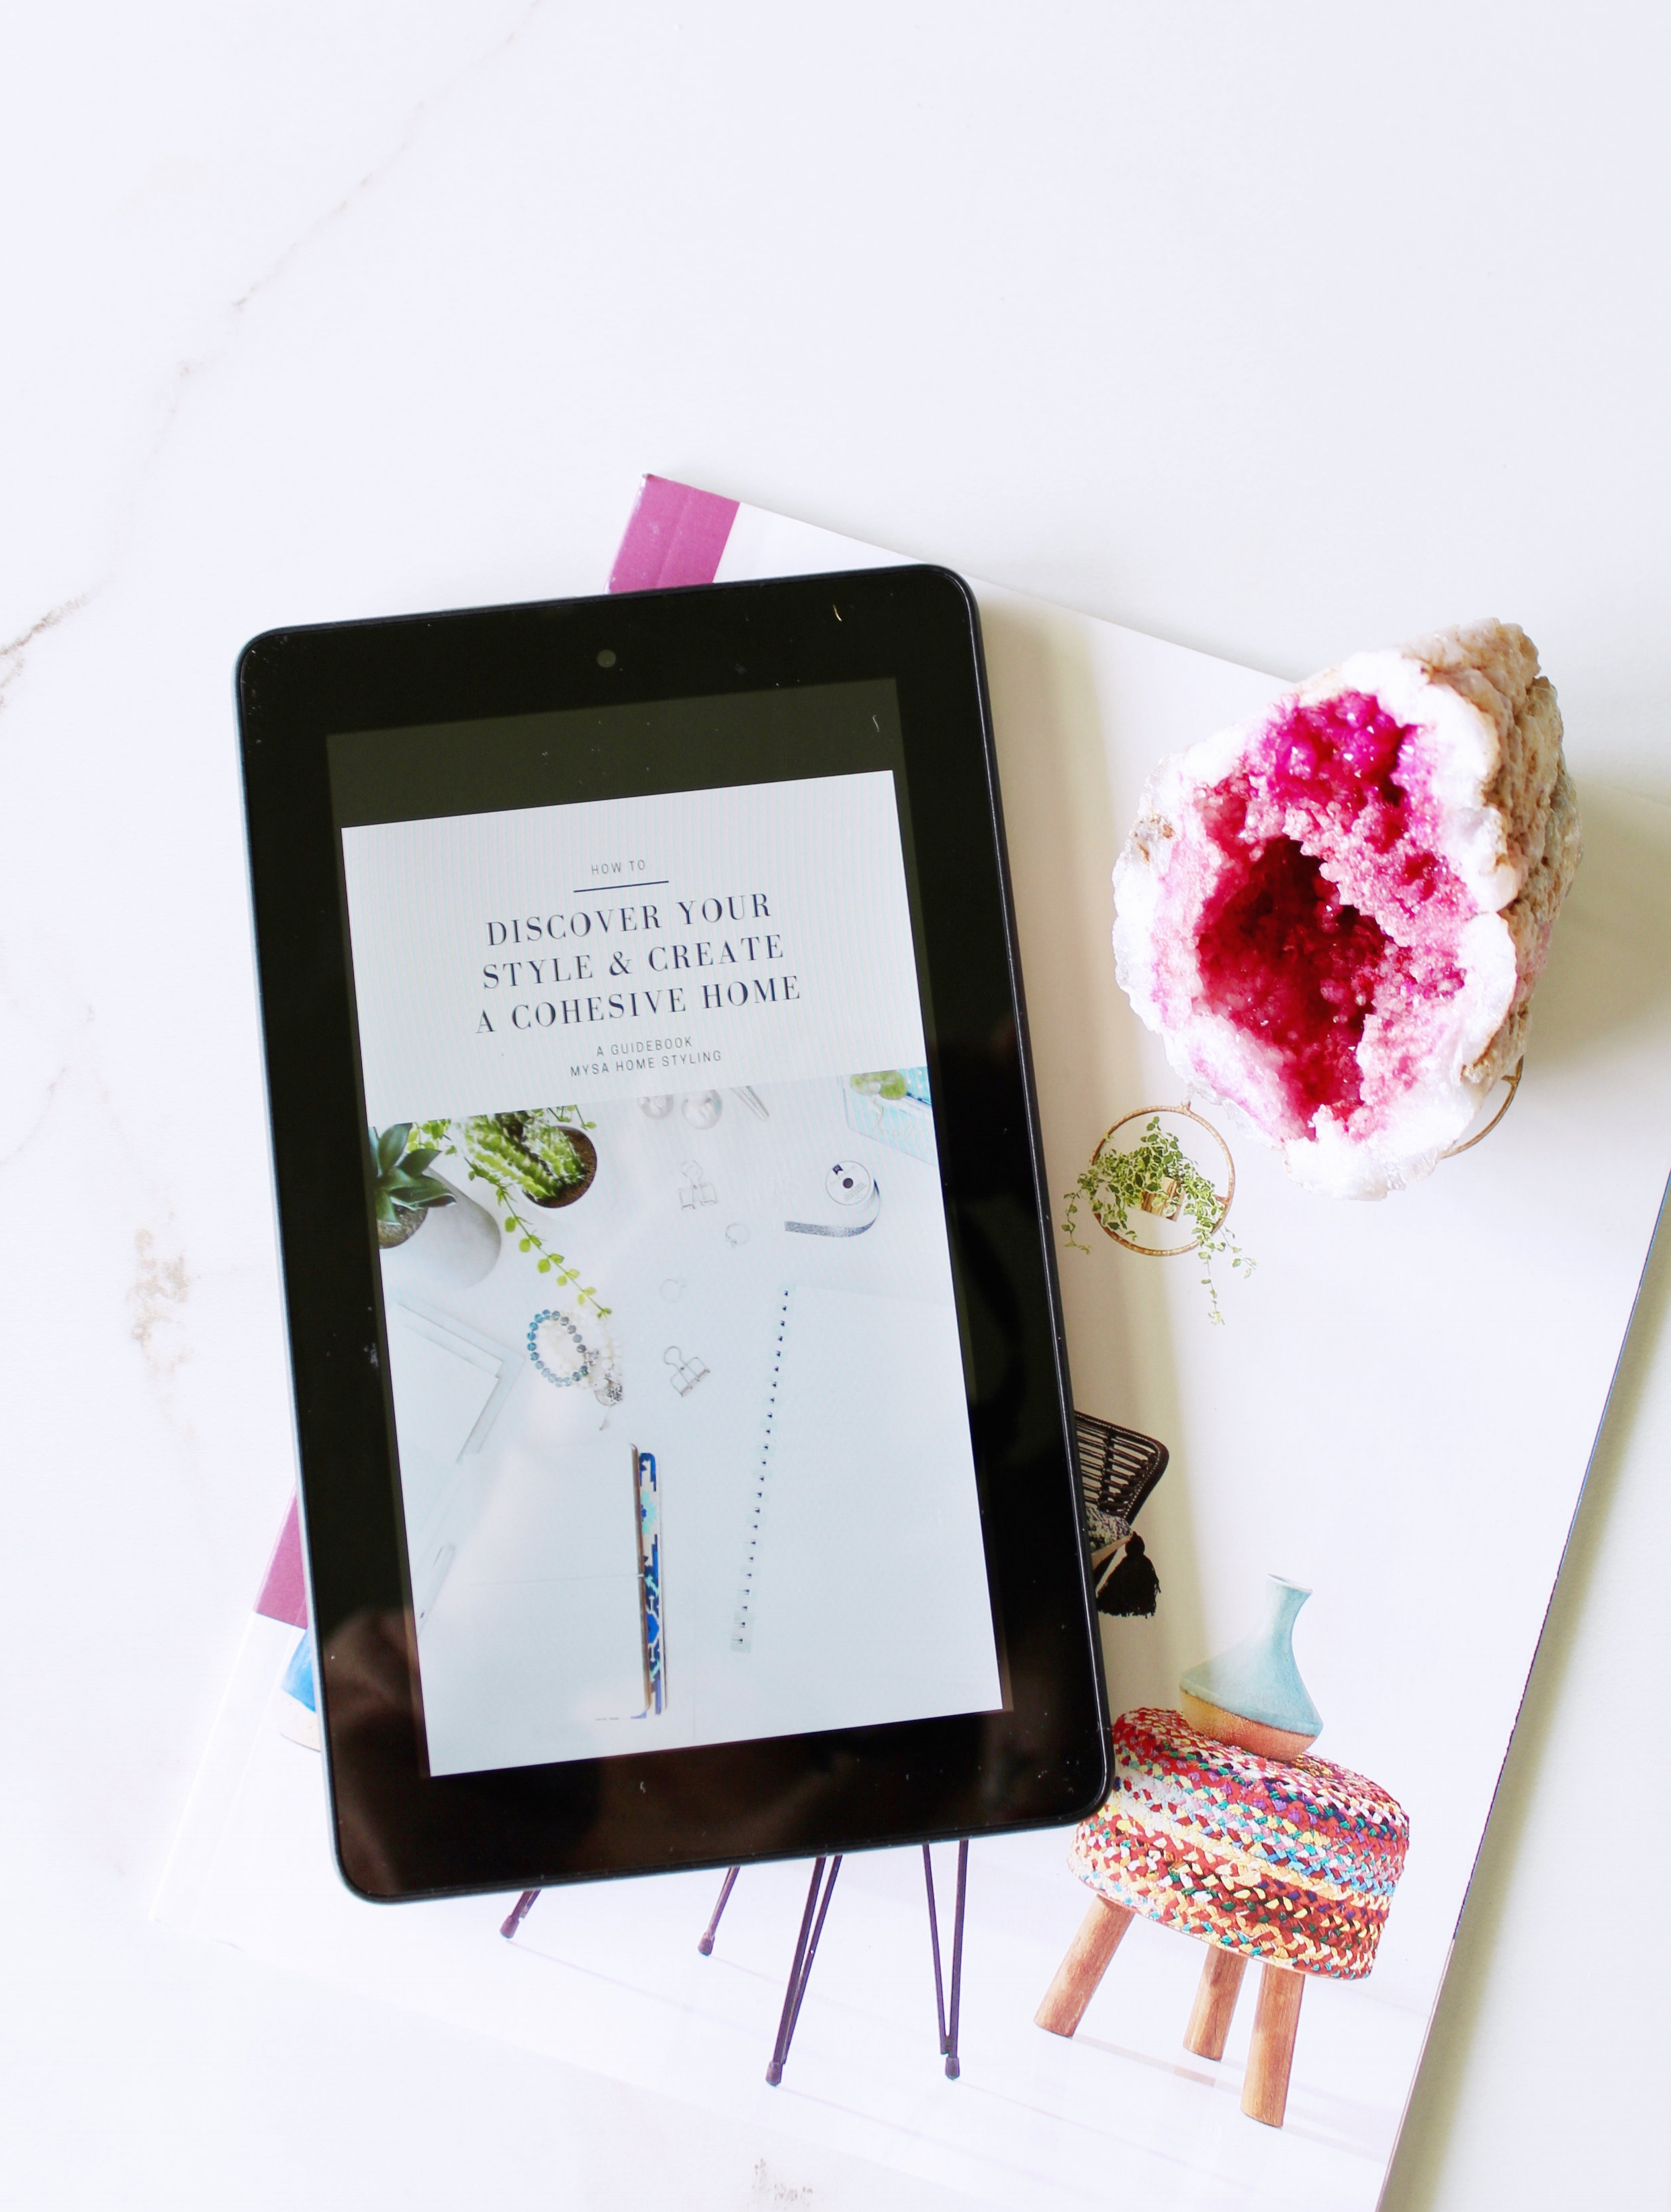 discovering your style and creating a cohesive home - 30 Page Guidebook